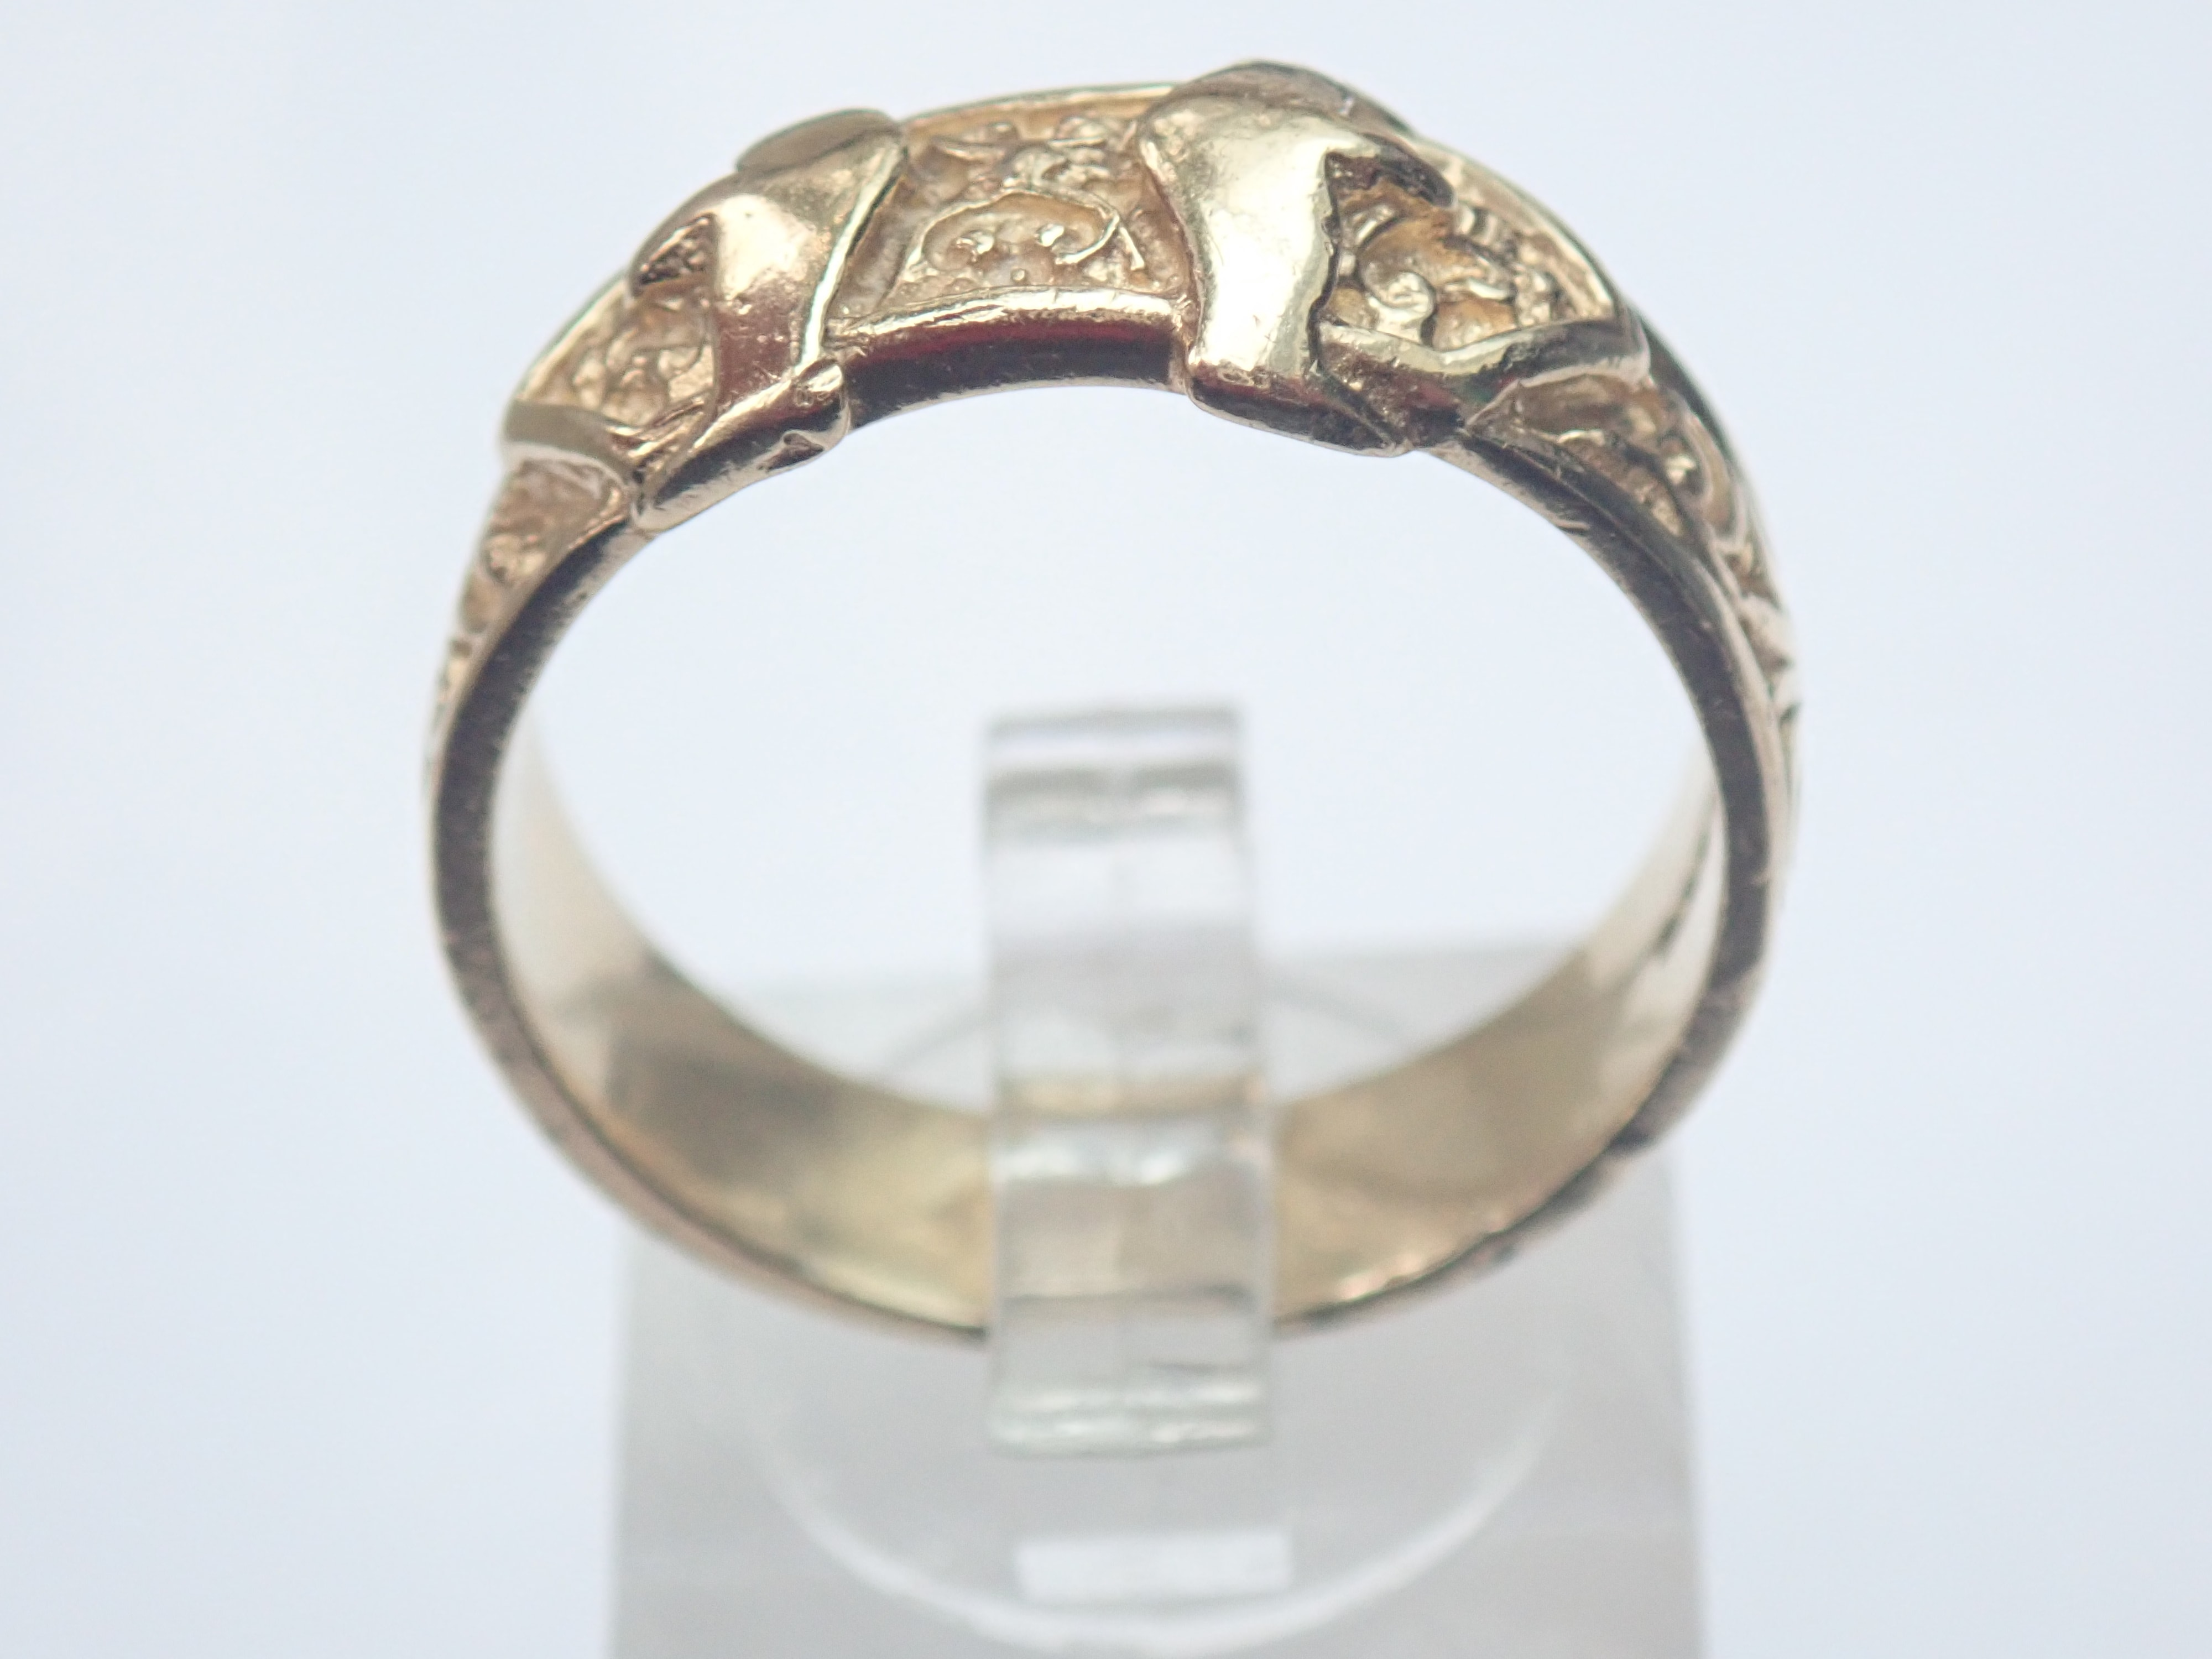 AZZ00611 - Vintage!! 9ct Gold Double Buckle Ring 6.3gms Size U1/2 #145